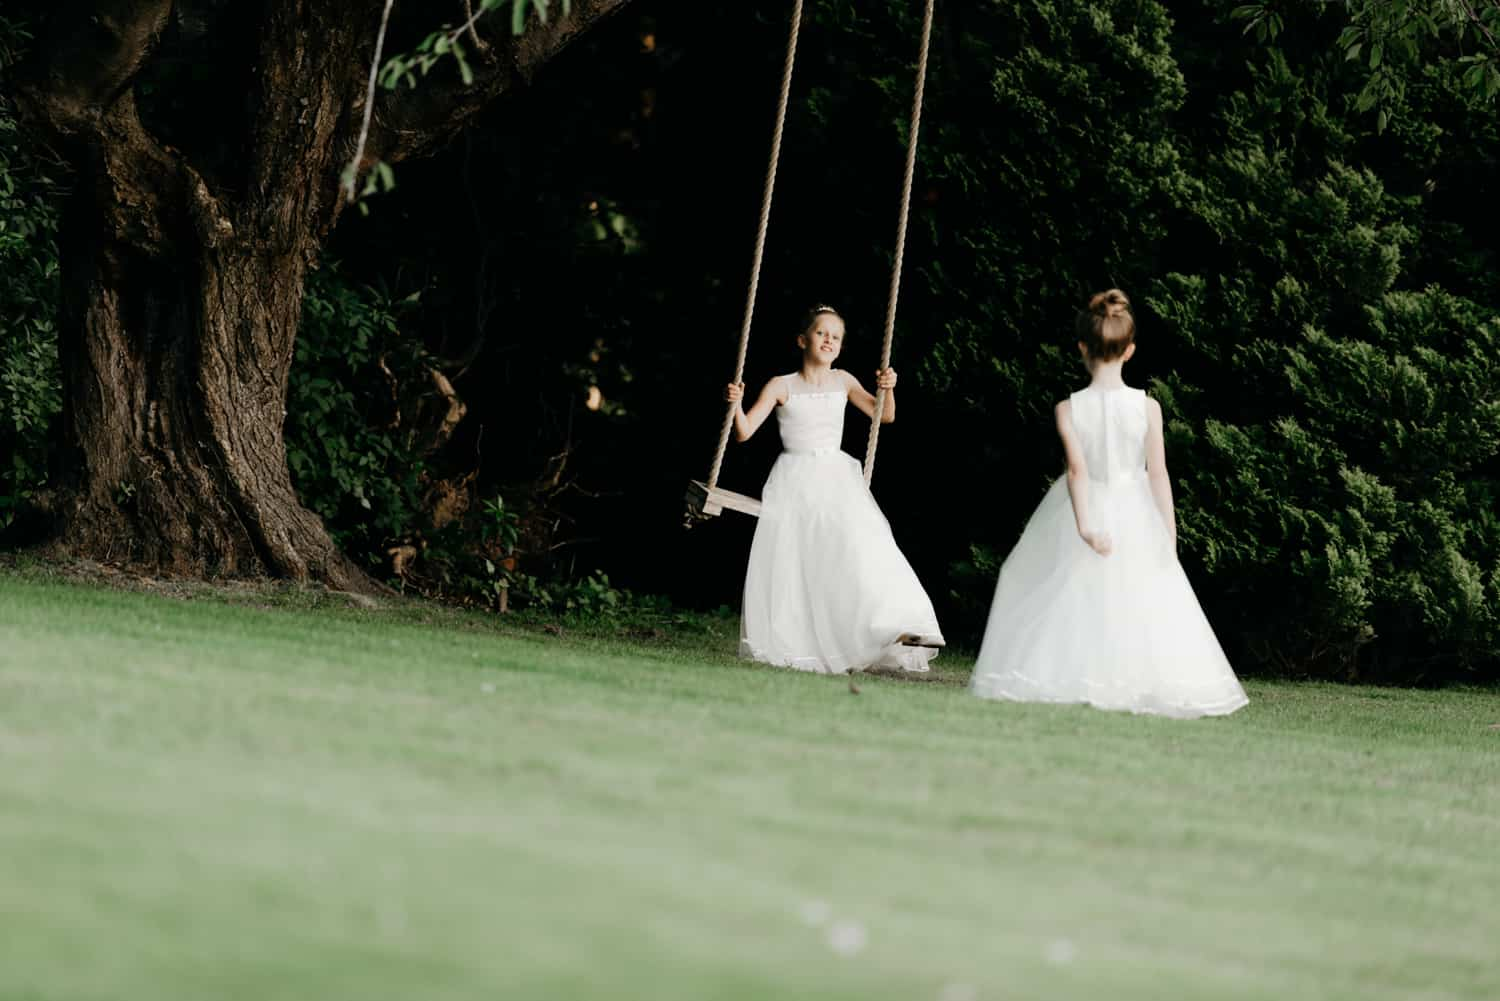 Flower girls on swing